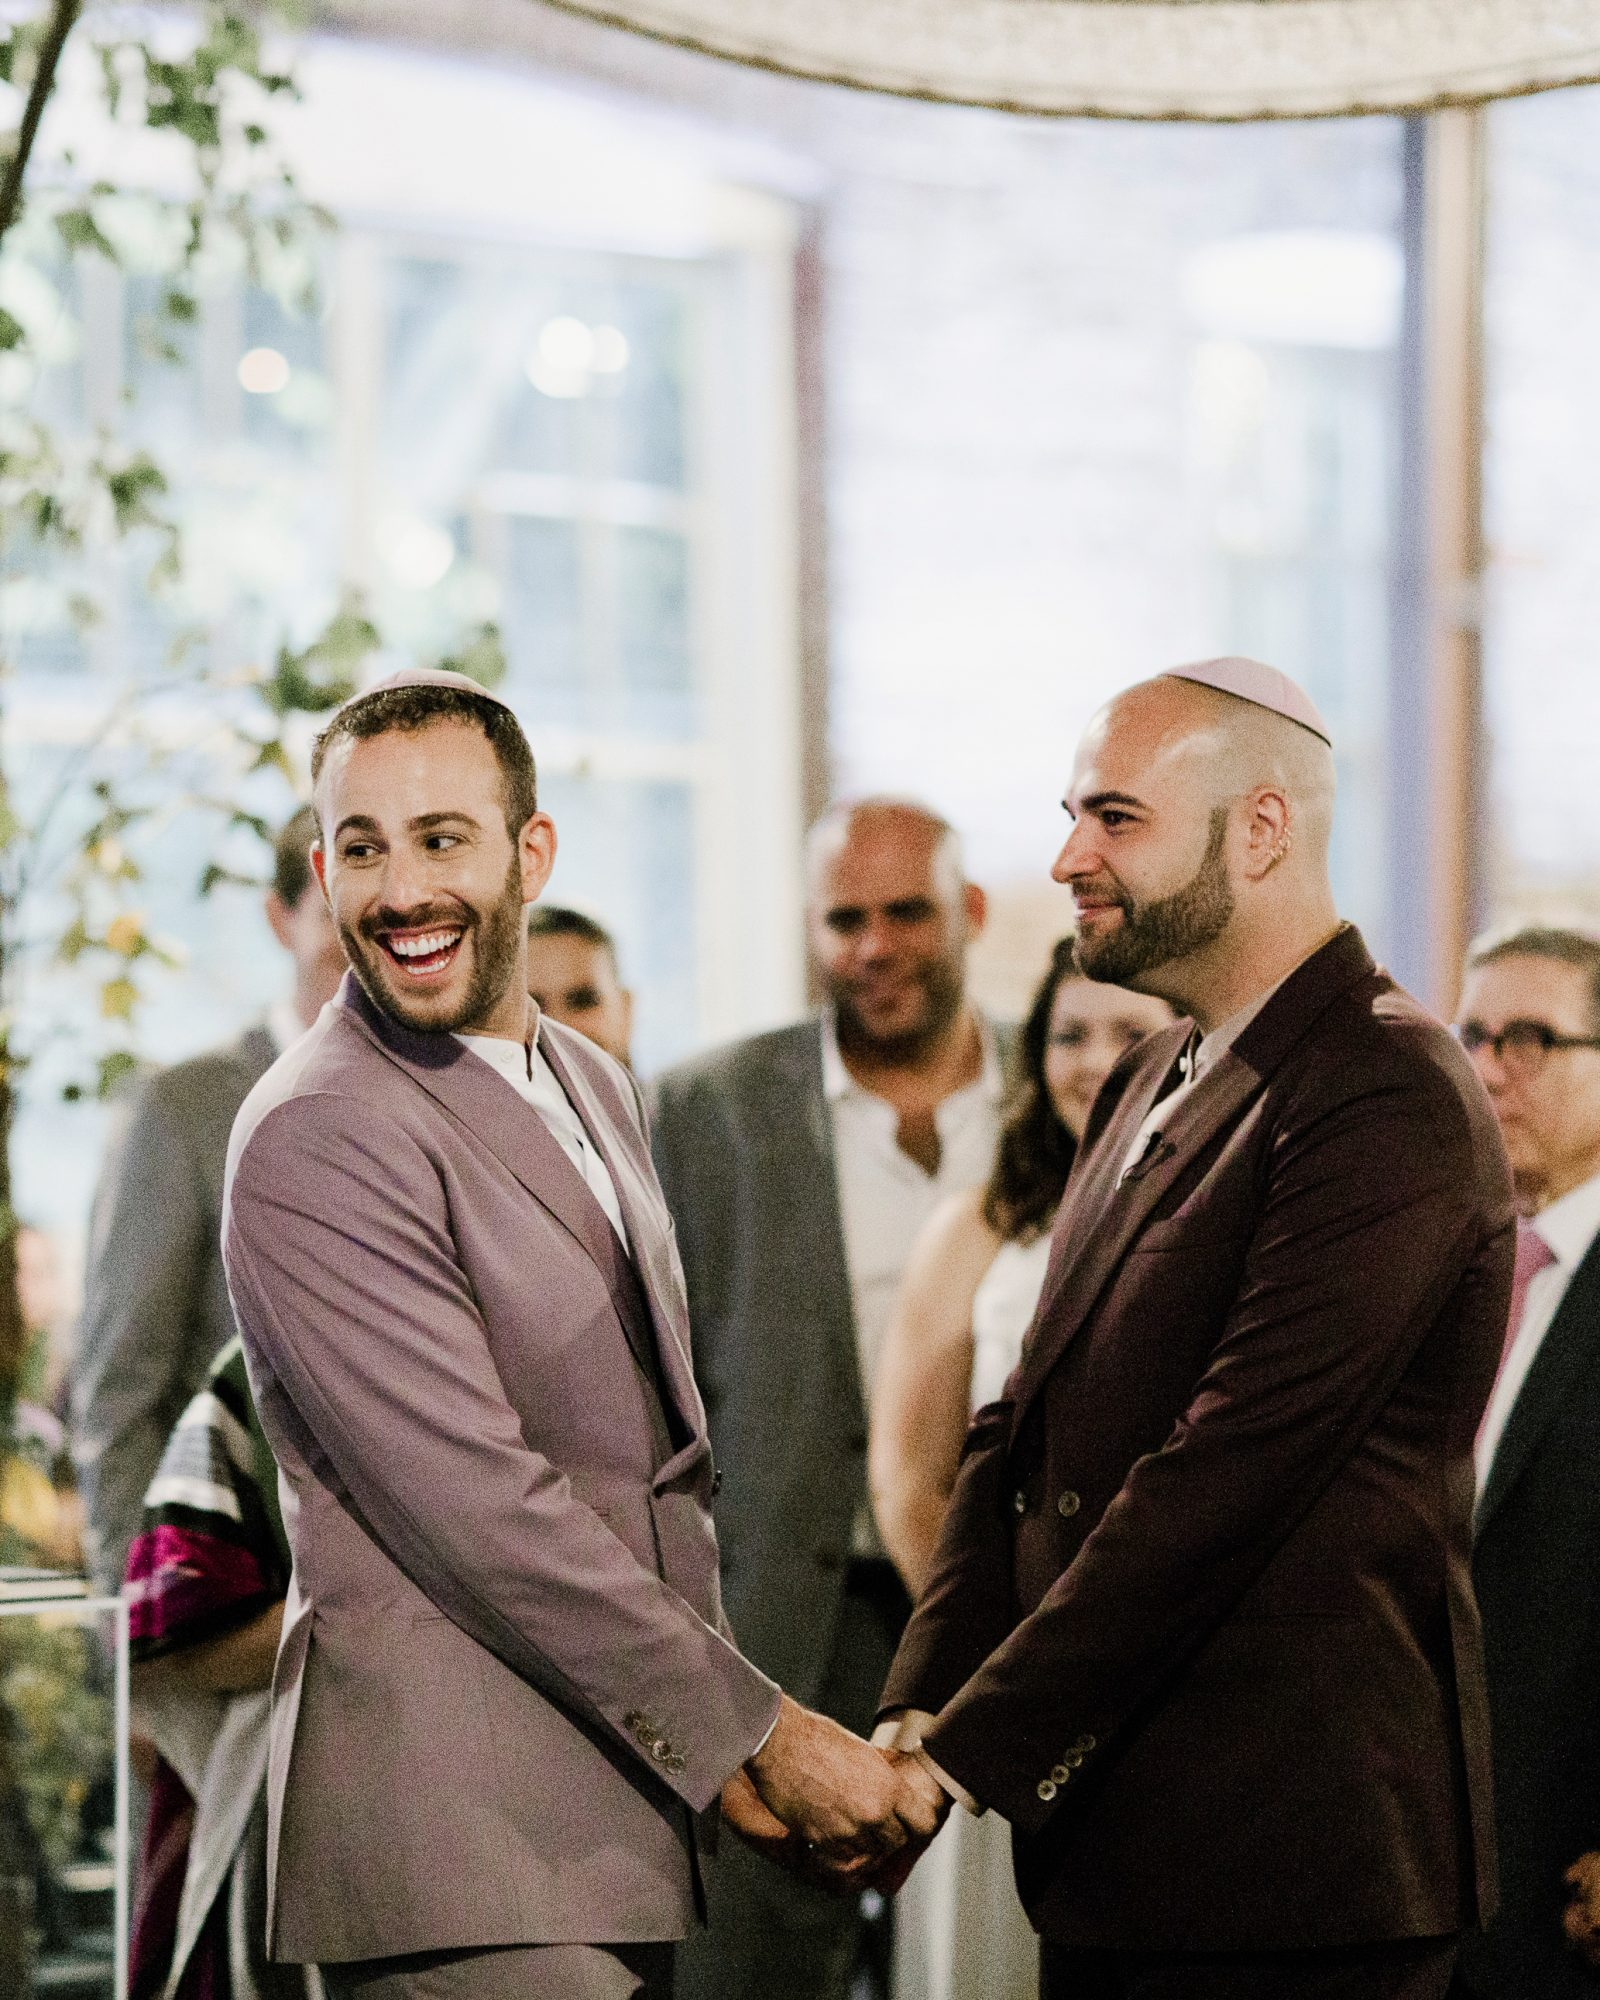 micah jason wedding grooms ceremony same sex jewish